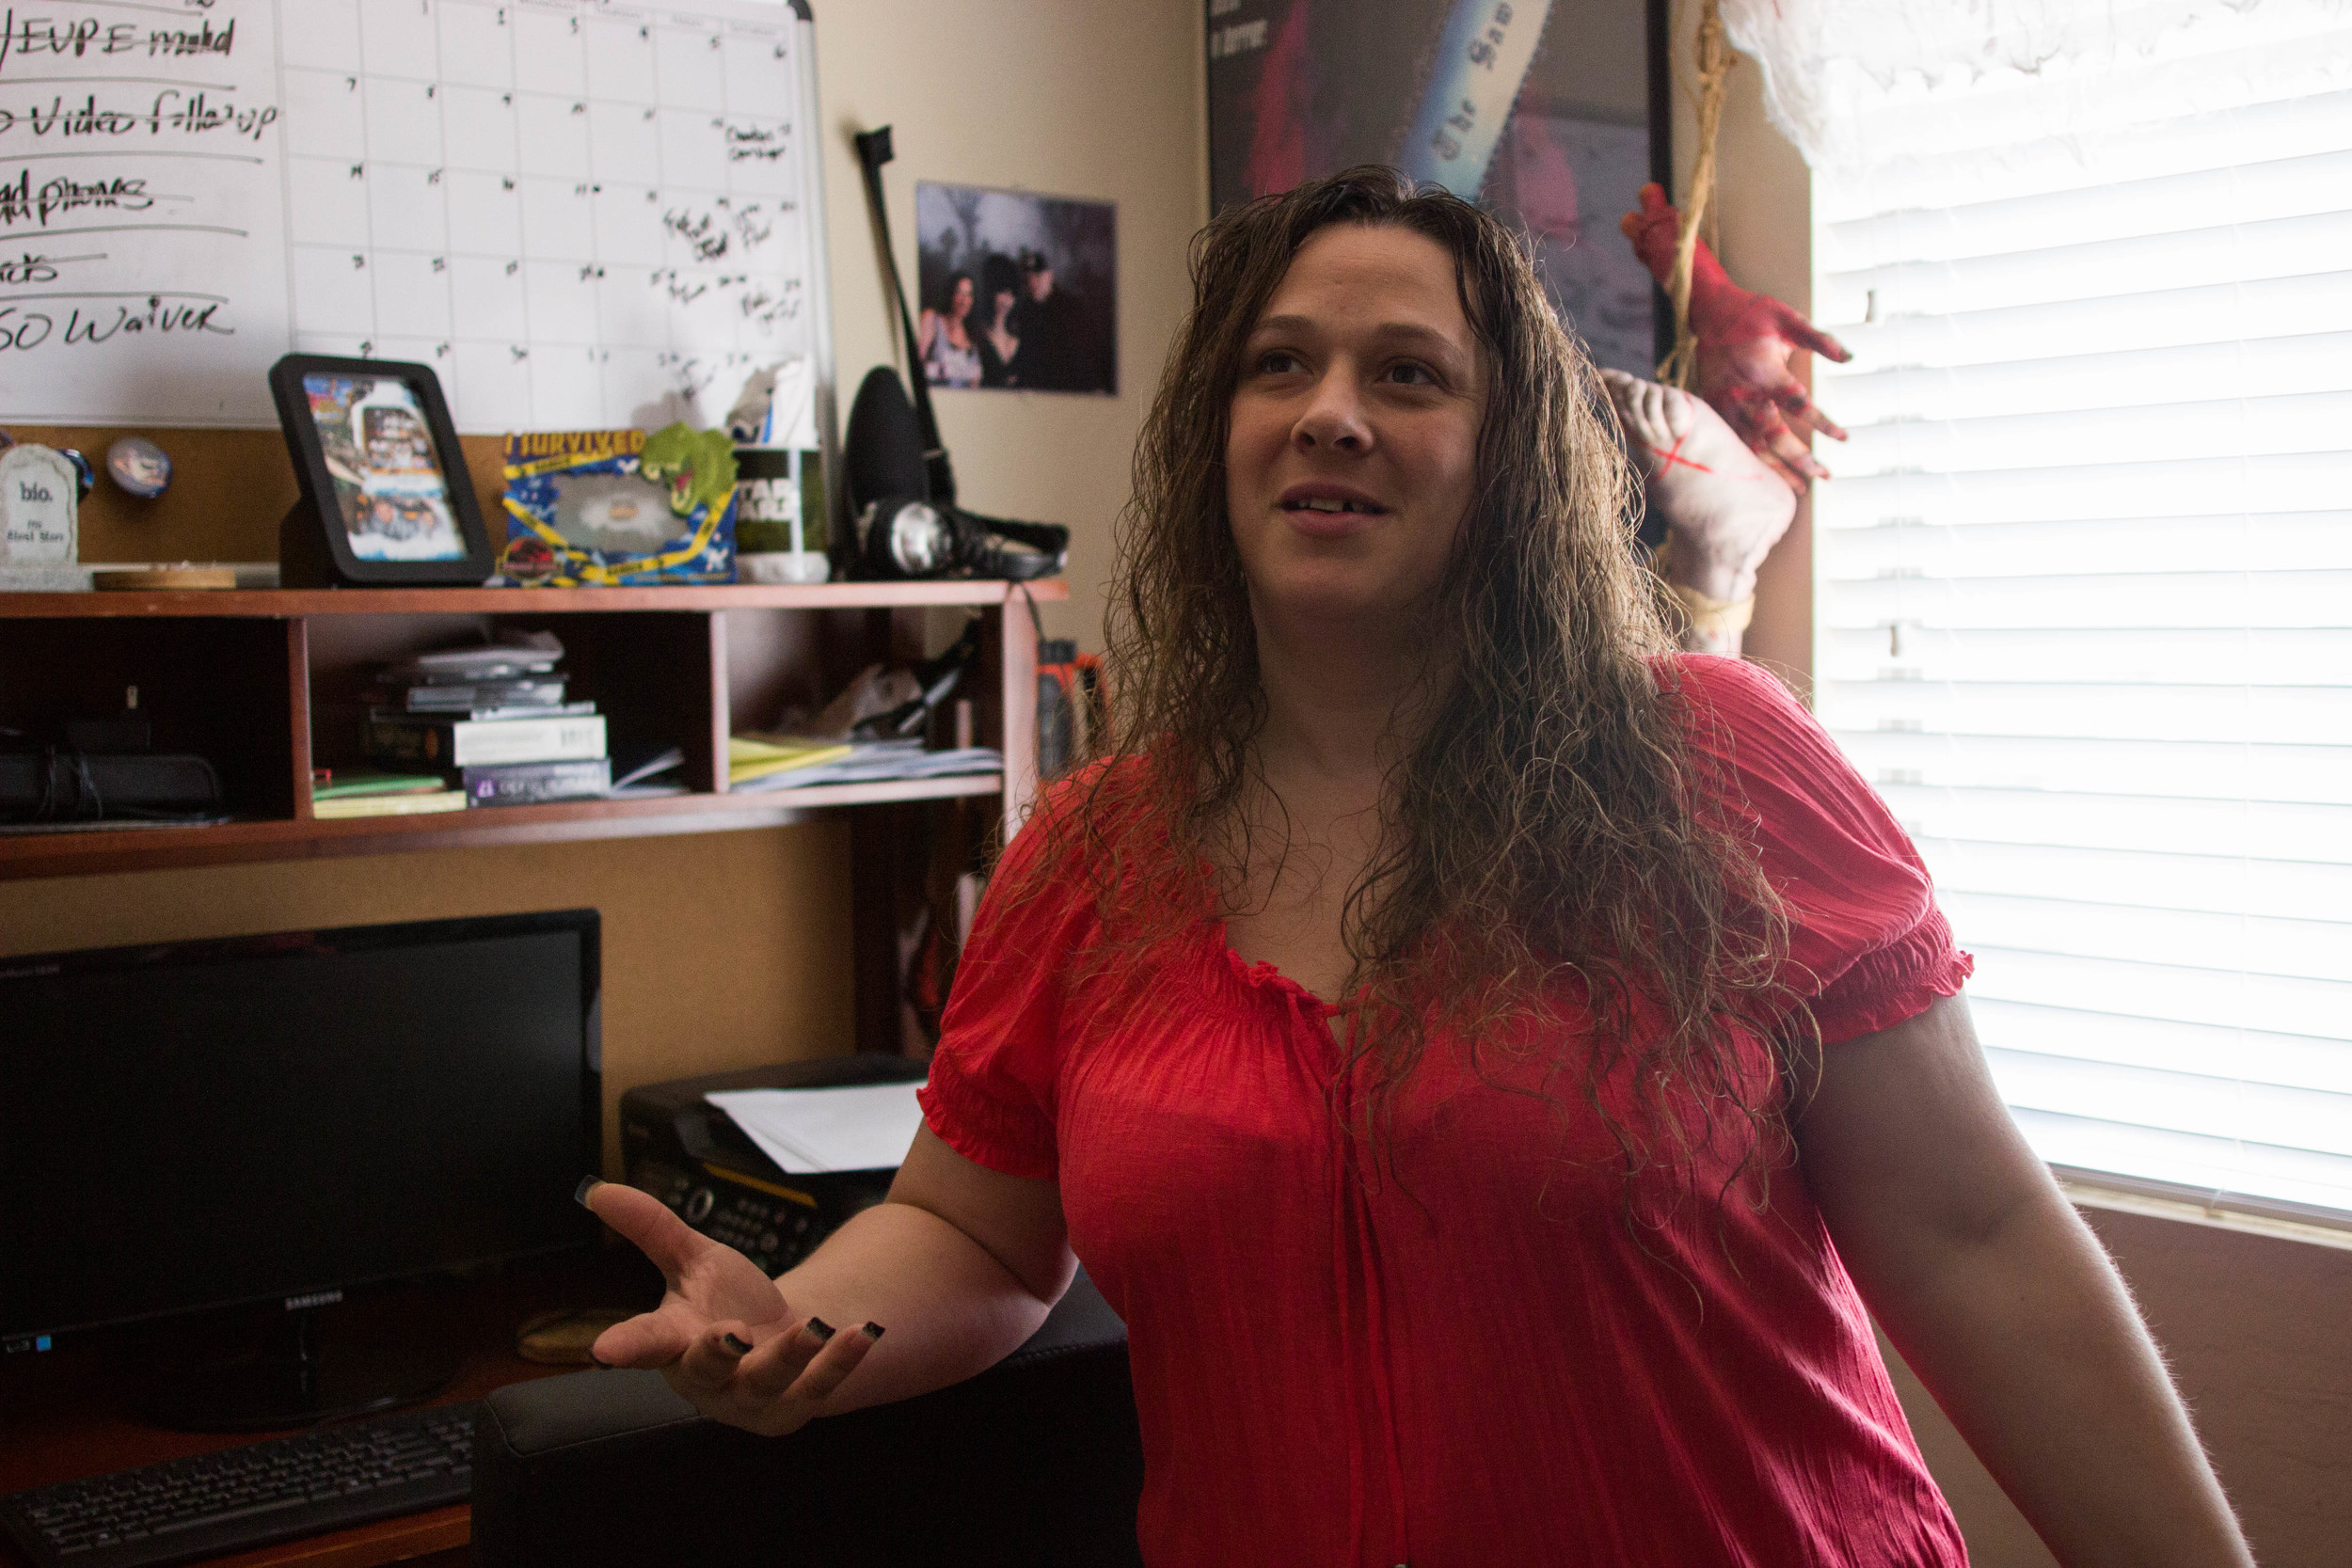 Owner and Public Relations Manager of the COPS Arizona paranormal group Marie Yates of Buckeye, Ariz. stands in her home office where she conducts much of her work as a travel agent in Buckeye, Ariz. (Photo by Gretchen Burnton)